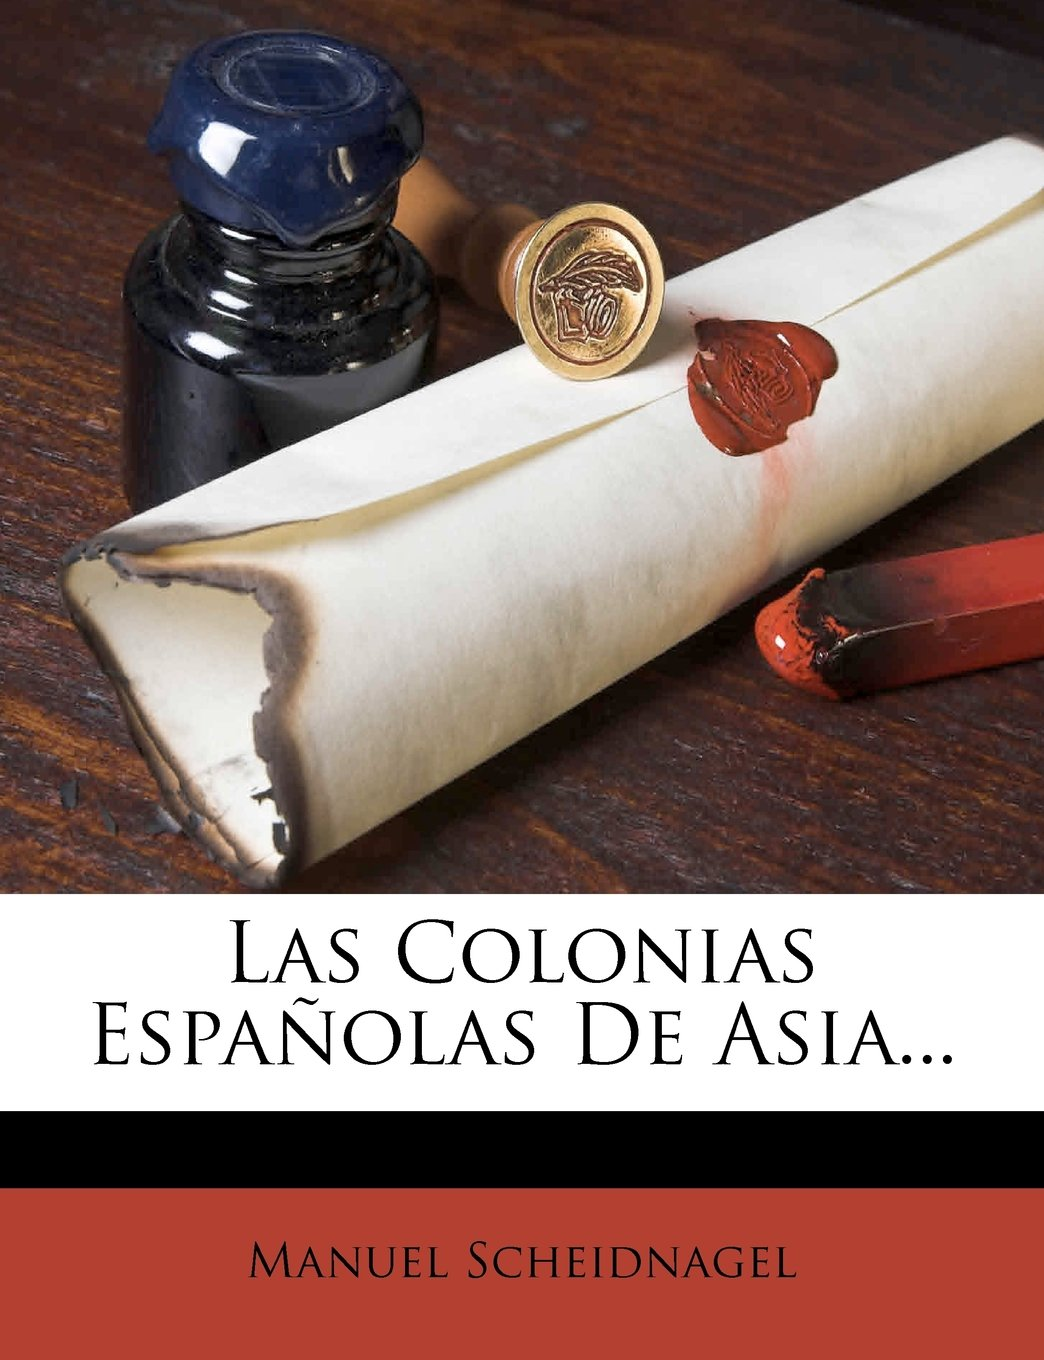 Las Colonias Españolas De Asia... (Spanish Edition): Manuel Scheidnagel: 9781277913040: Amazon.com: Books